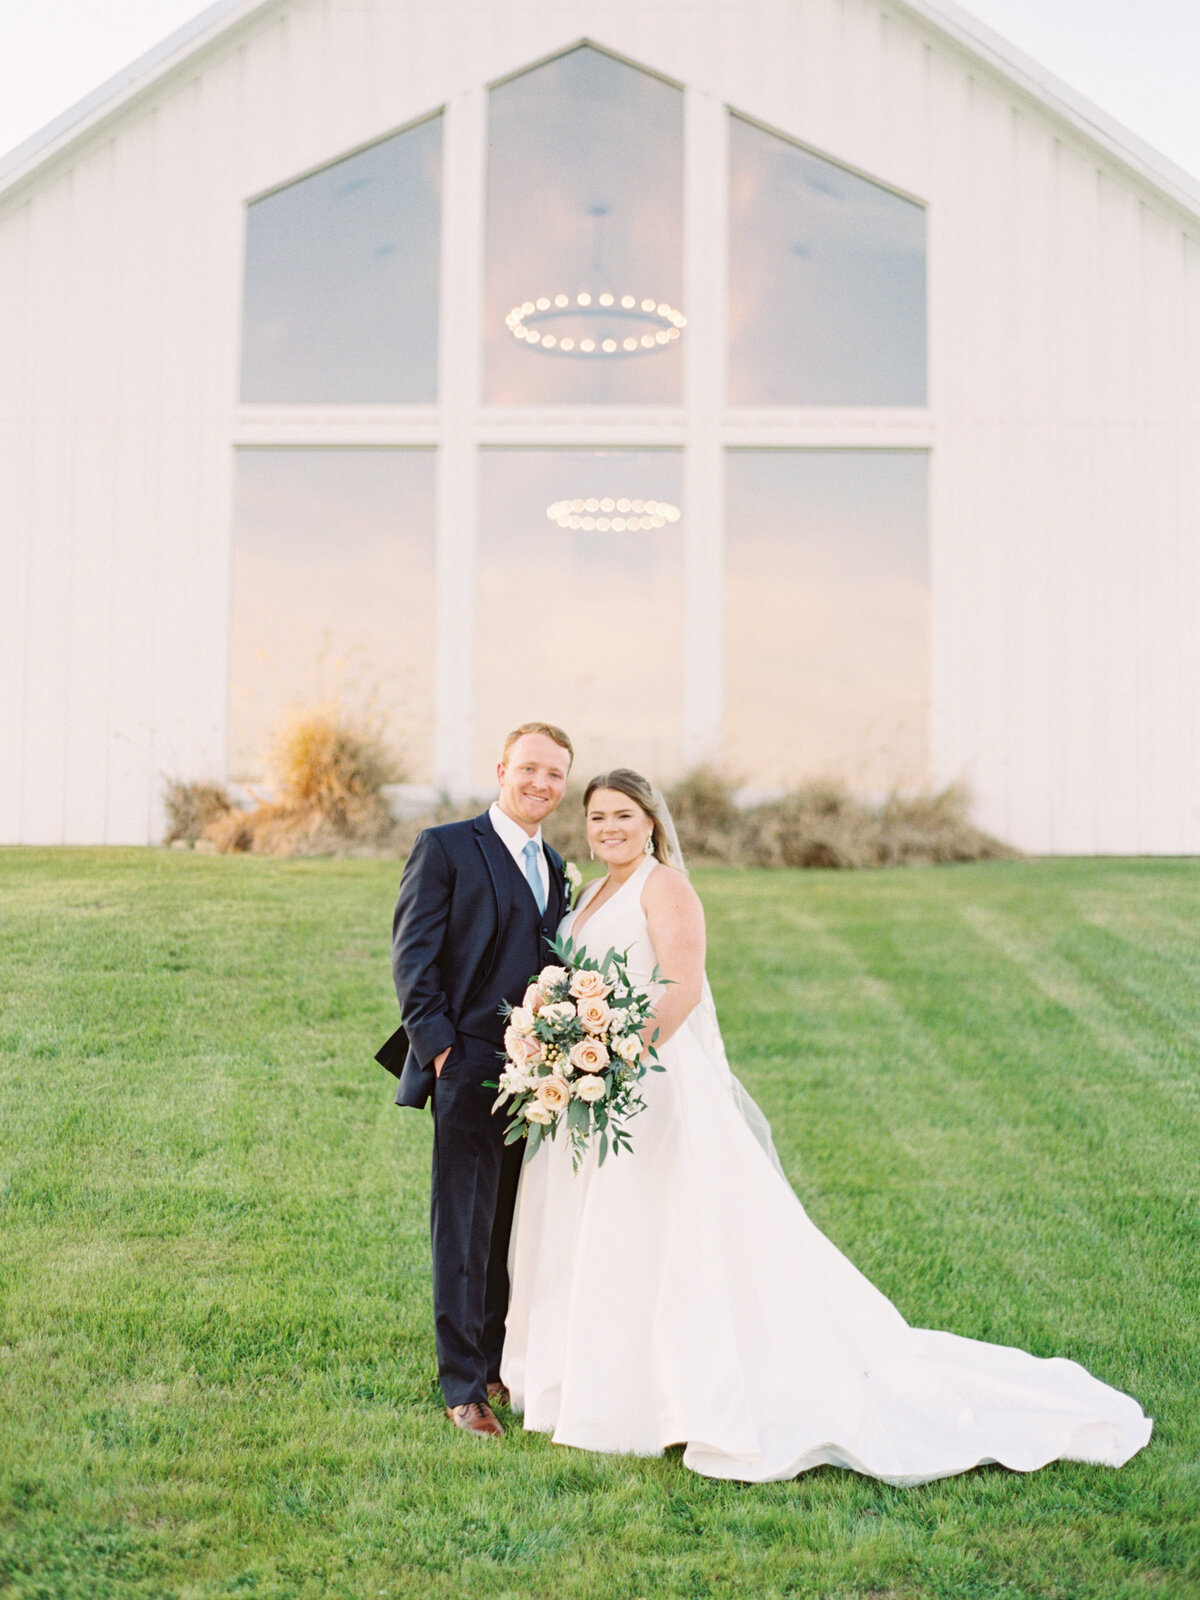 the-farmhouse-wedding-houston-texas-wedding-photographer-mackenzie-reiter-photography-70